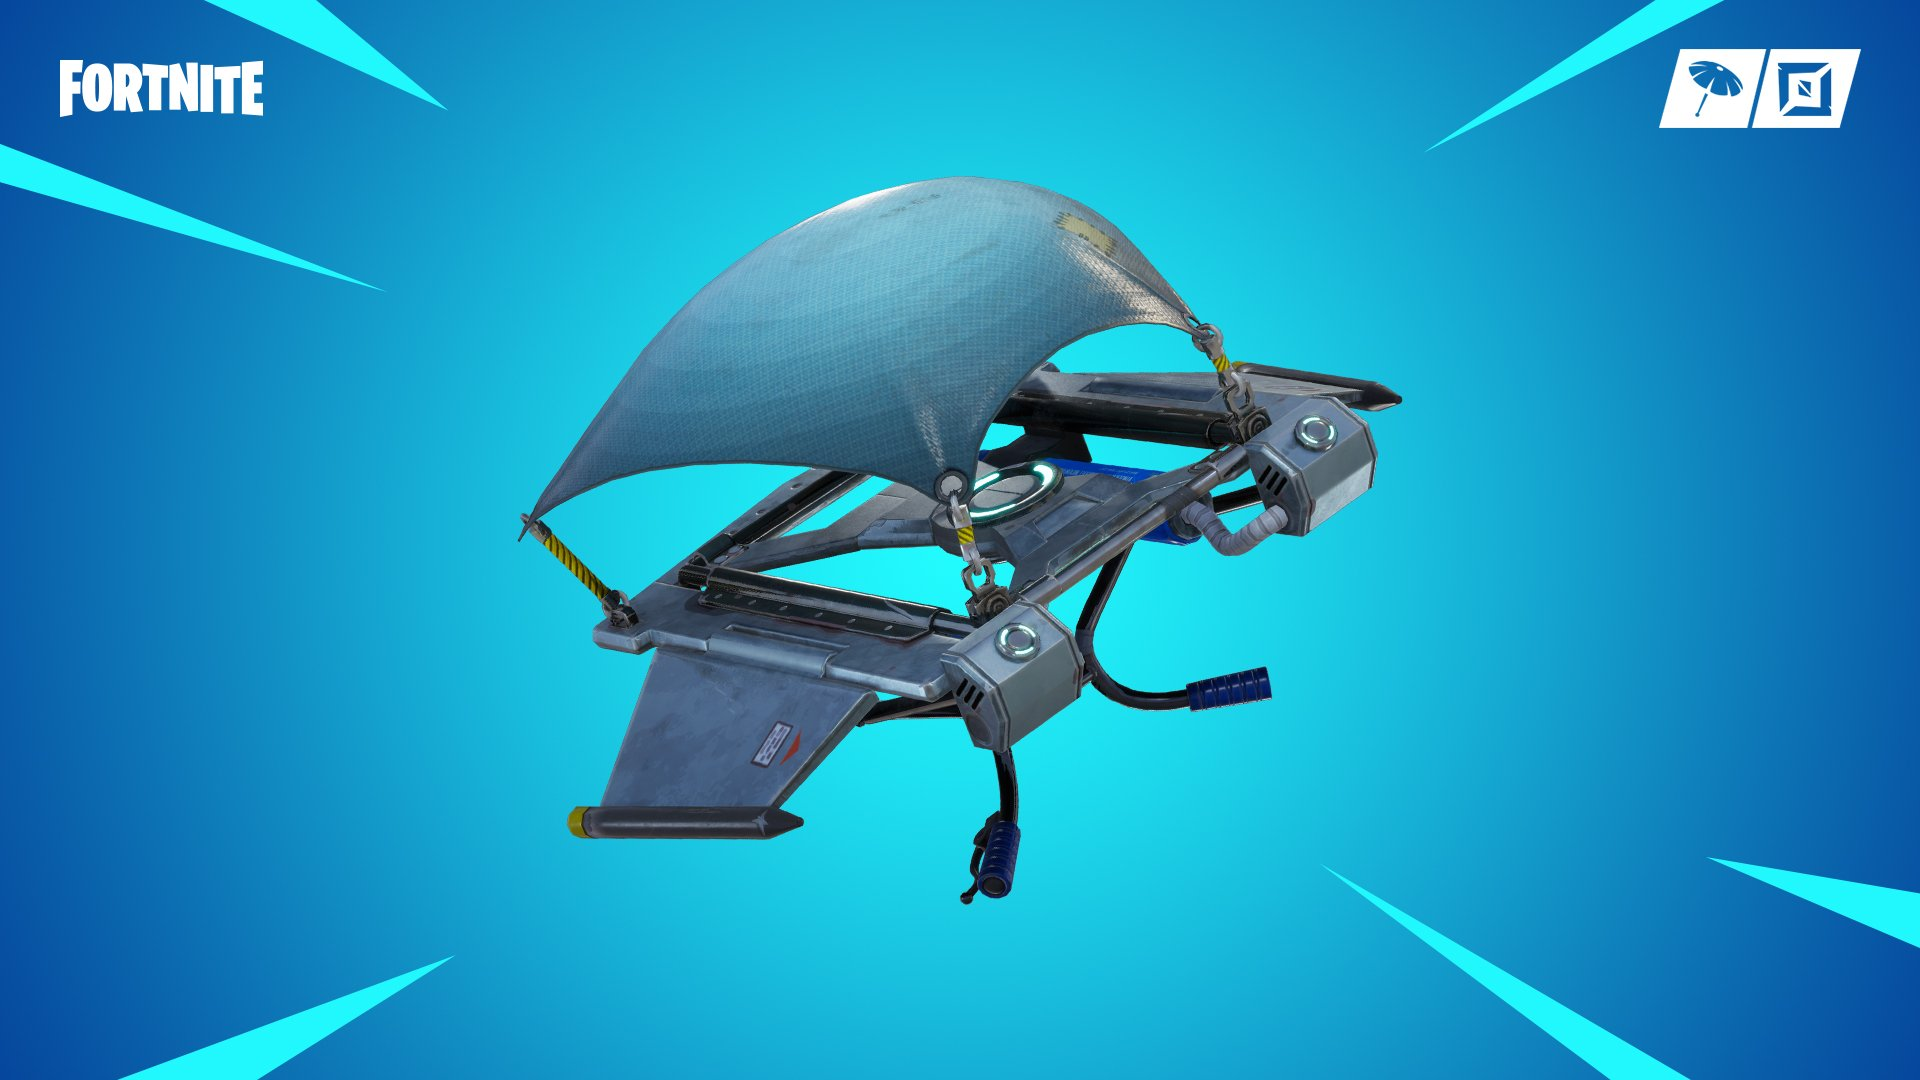 Update v7.20 includes the return of the Glider in Fortnite.